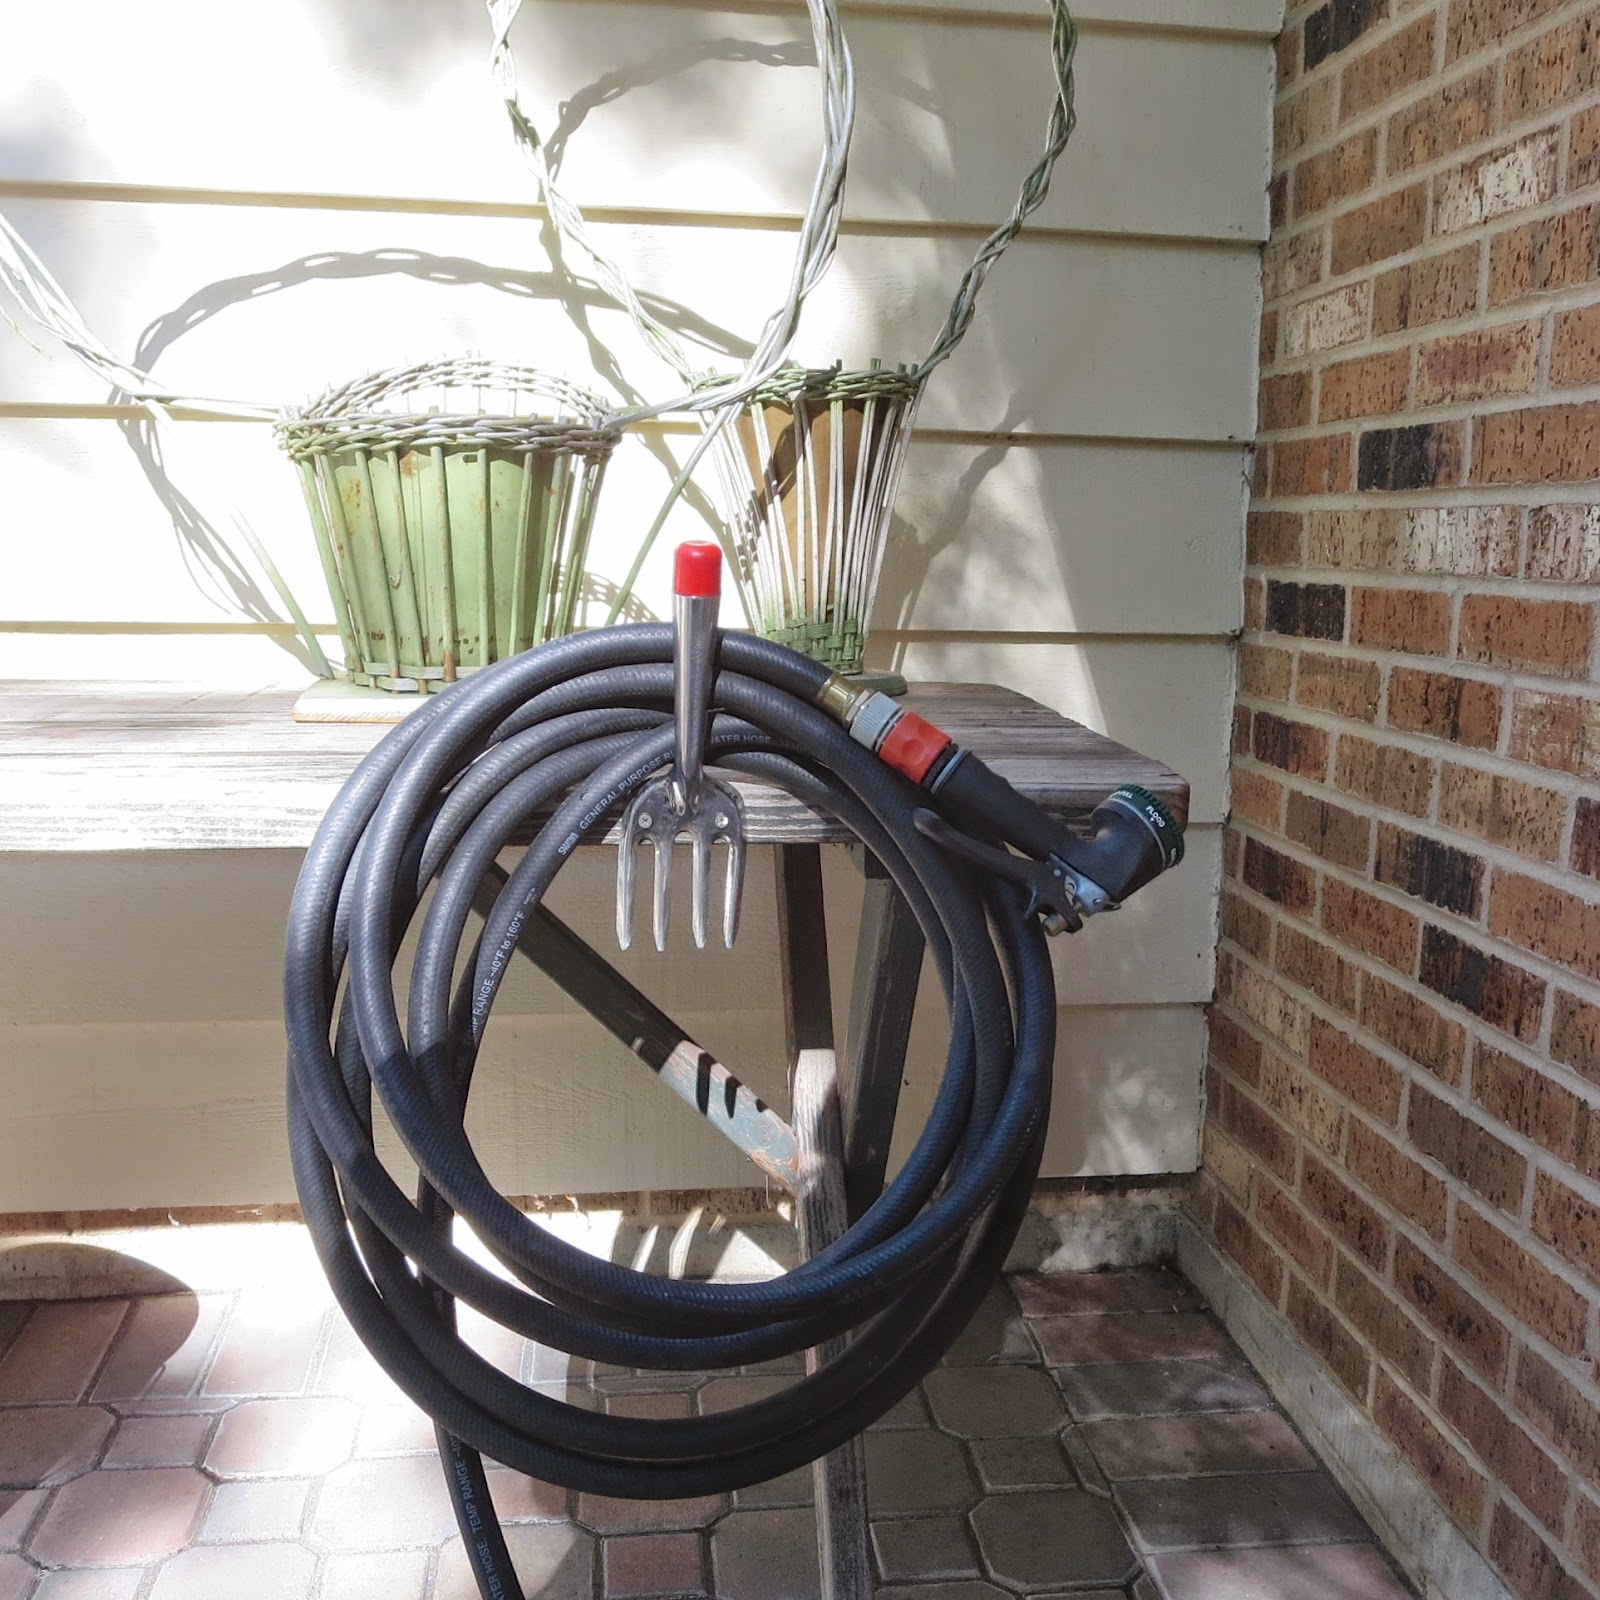 Hose Stands: Anything Goes Here: Diy Garden Hose Holder. A Simple